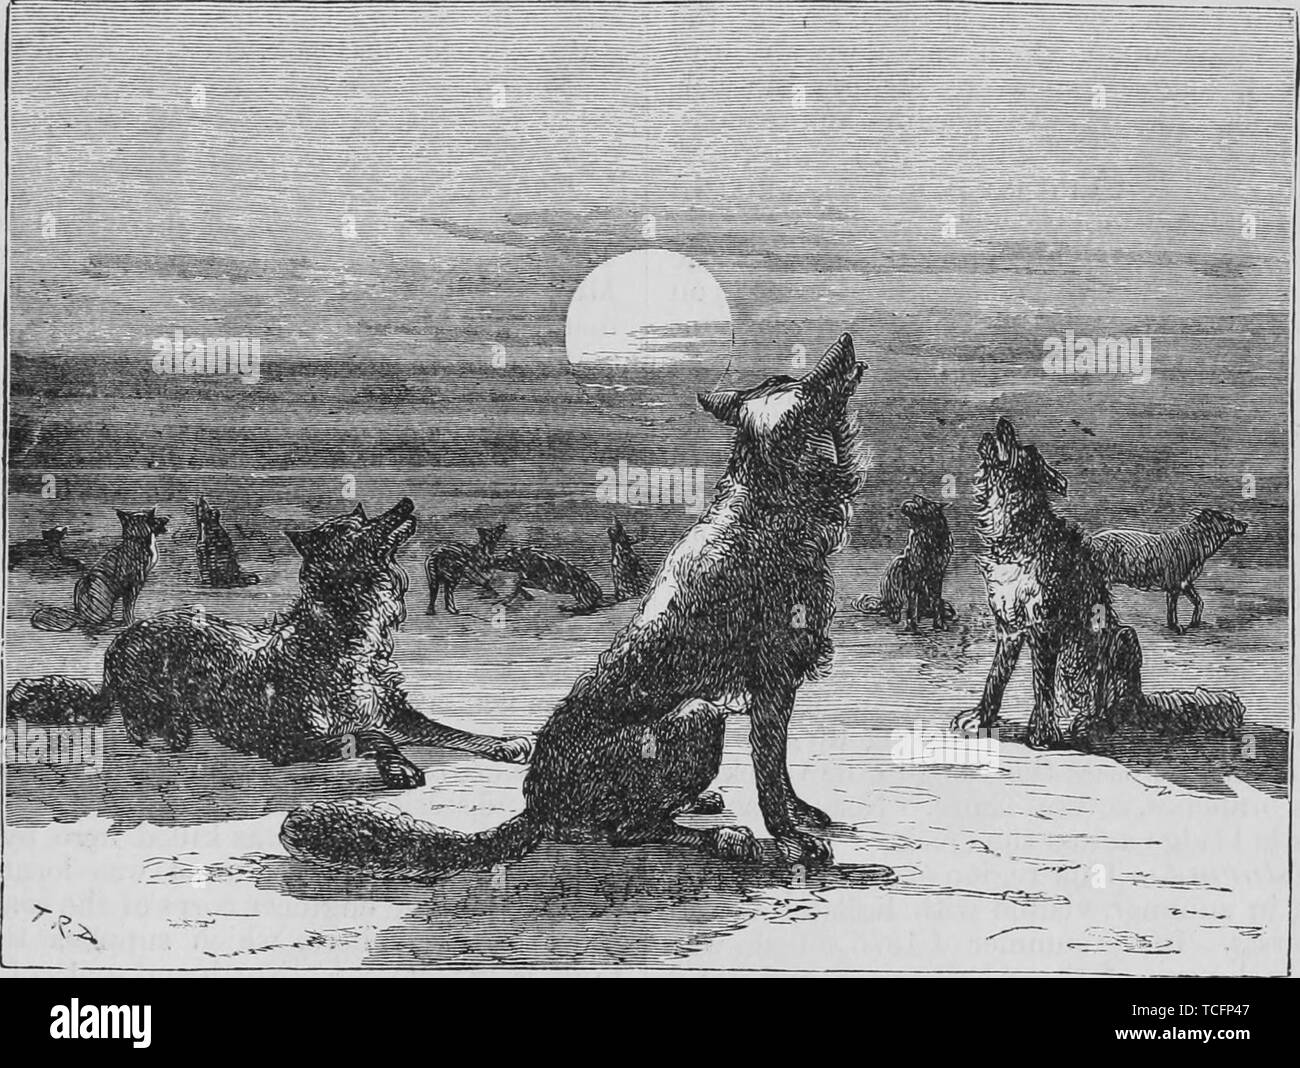 Engraving of the coyote pack howling at the Moon, from the book 'The Pacific tourist' by Henry T. Williams, 1878. Courtesy Internet Archive. () - Stock Image